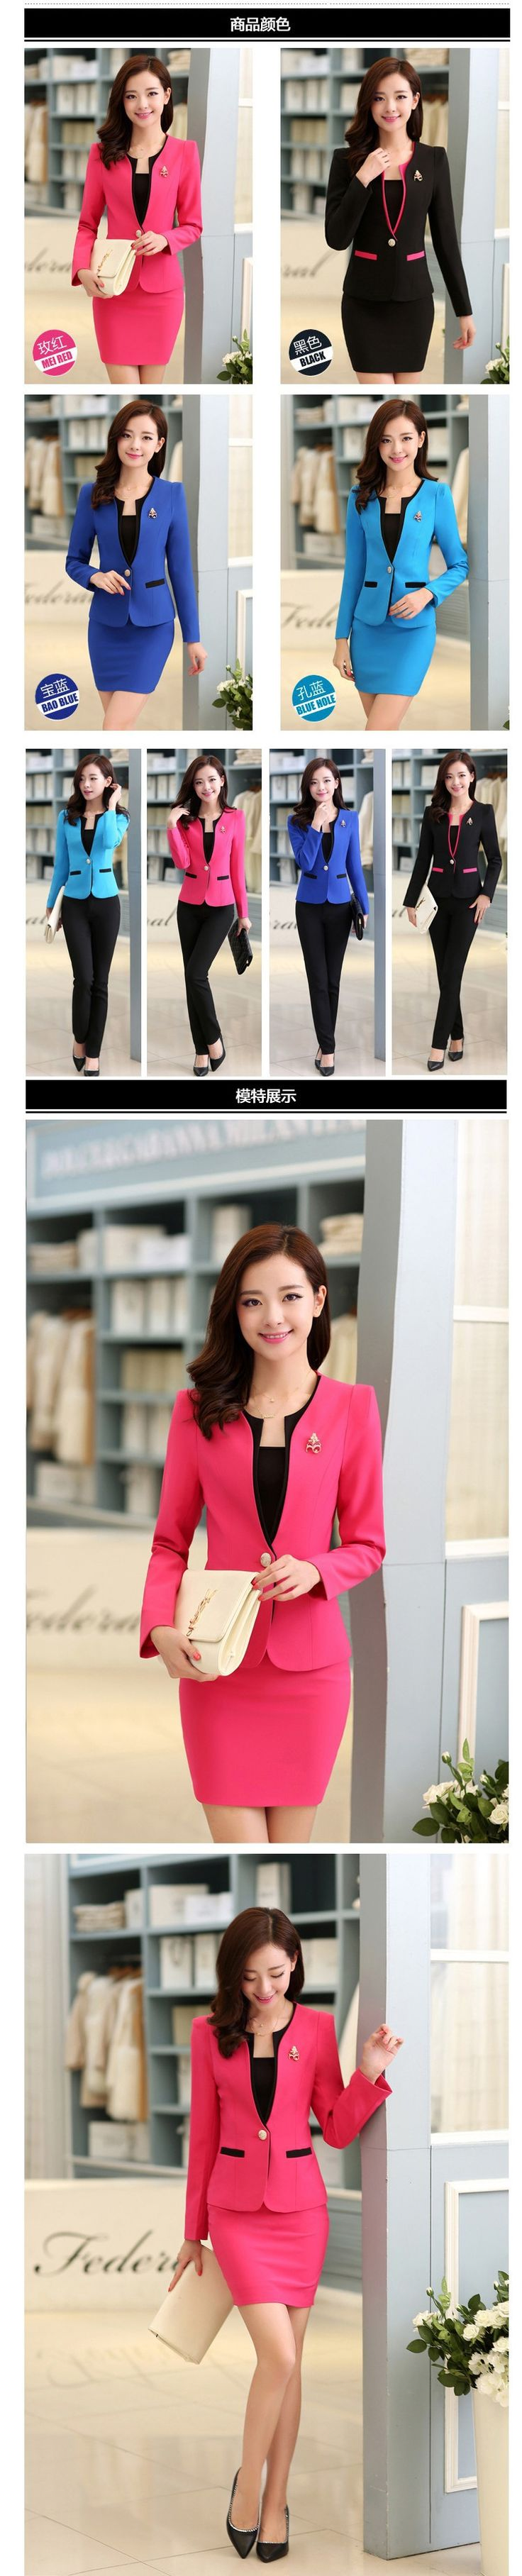 New 2015 Autumn Formal Red Blazer Women Suits with Skirt and Jacket Sets Ladies Office Suits Work Uniform for Beauty Salon | Fashion Boutique